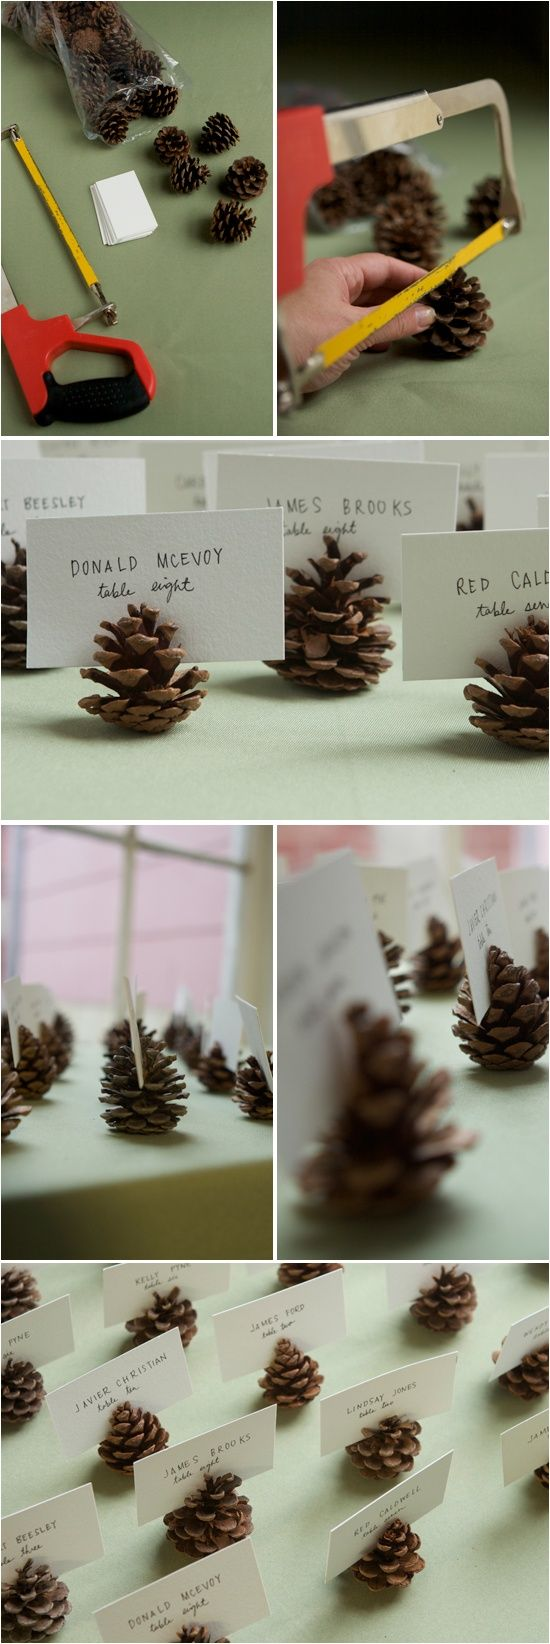 Holiday decorating with pine cone crafts pictures to pin on pinterest - Name Tag Holders Bordkort Pinterest Wedding